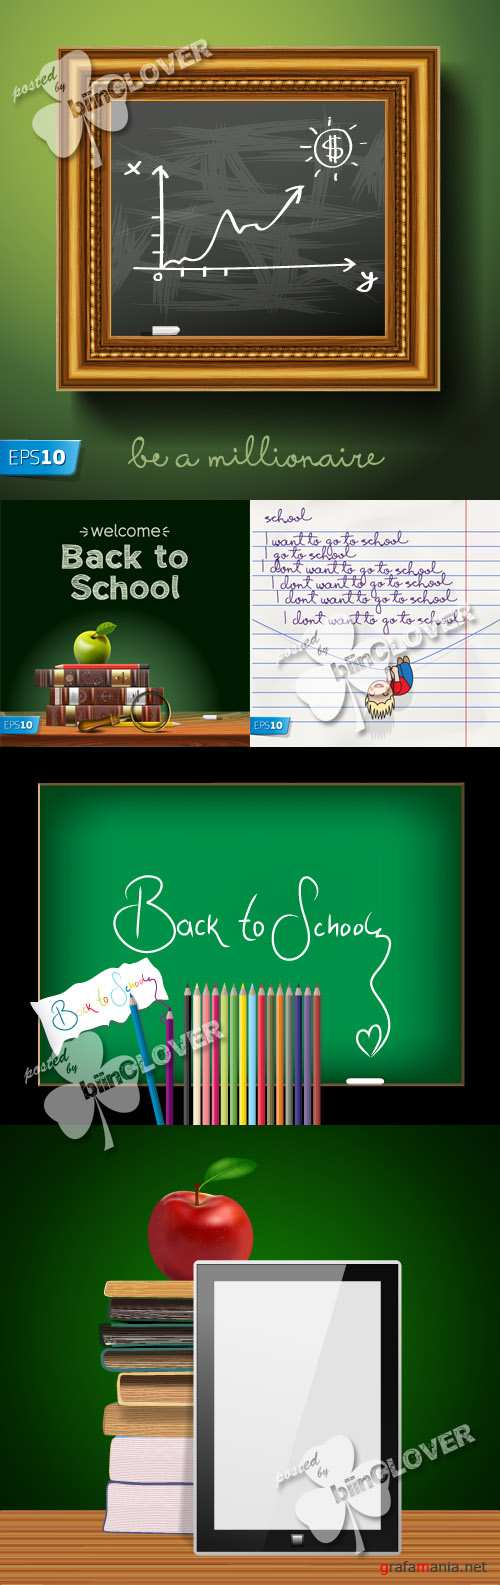 Back to school illustration 0232